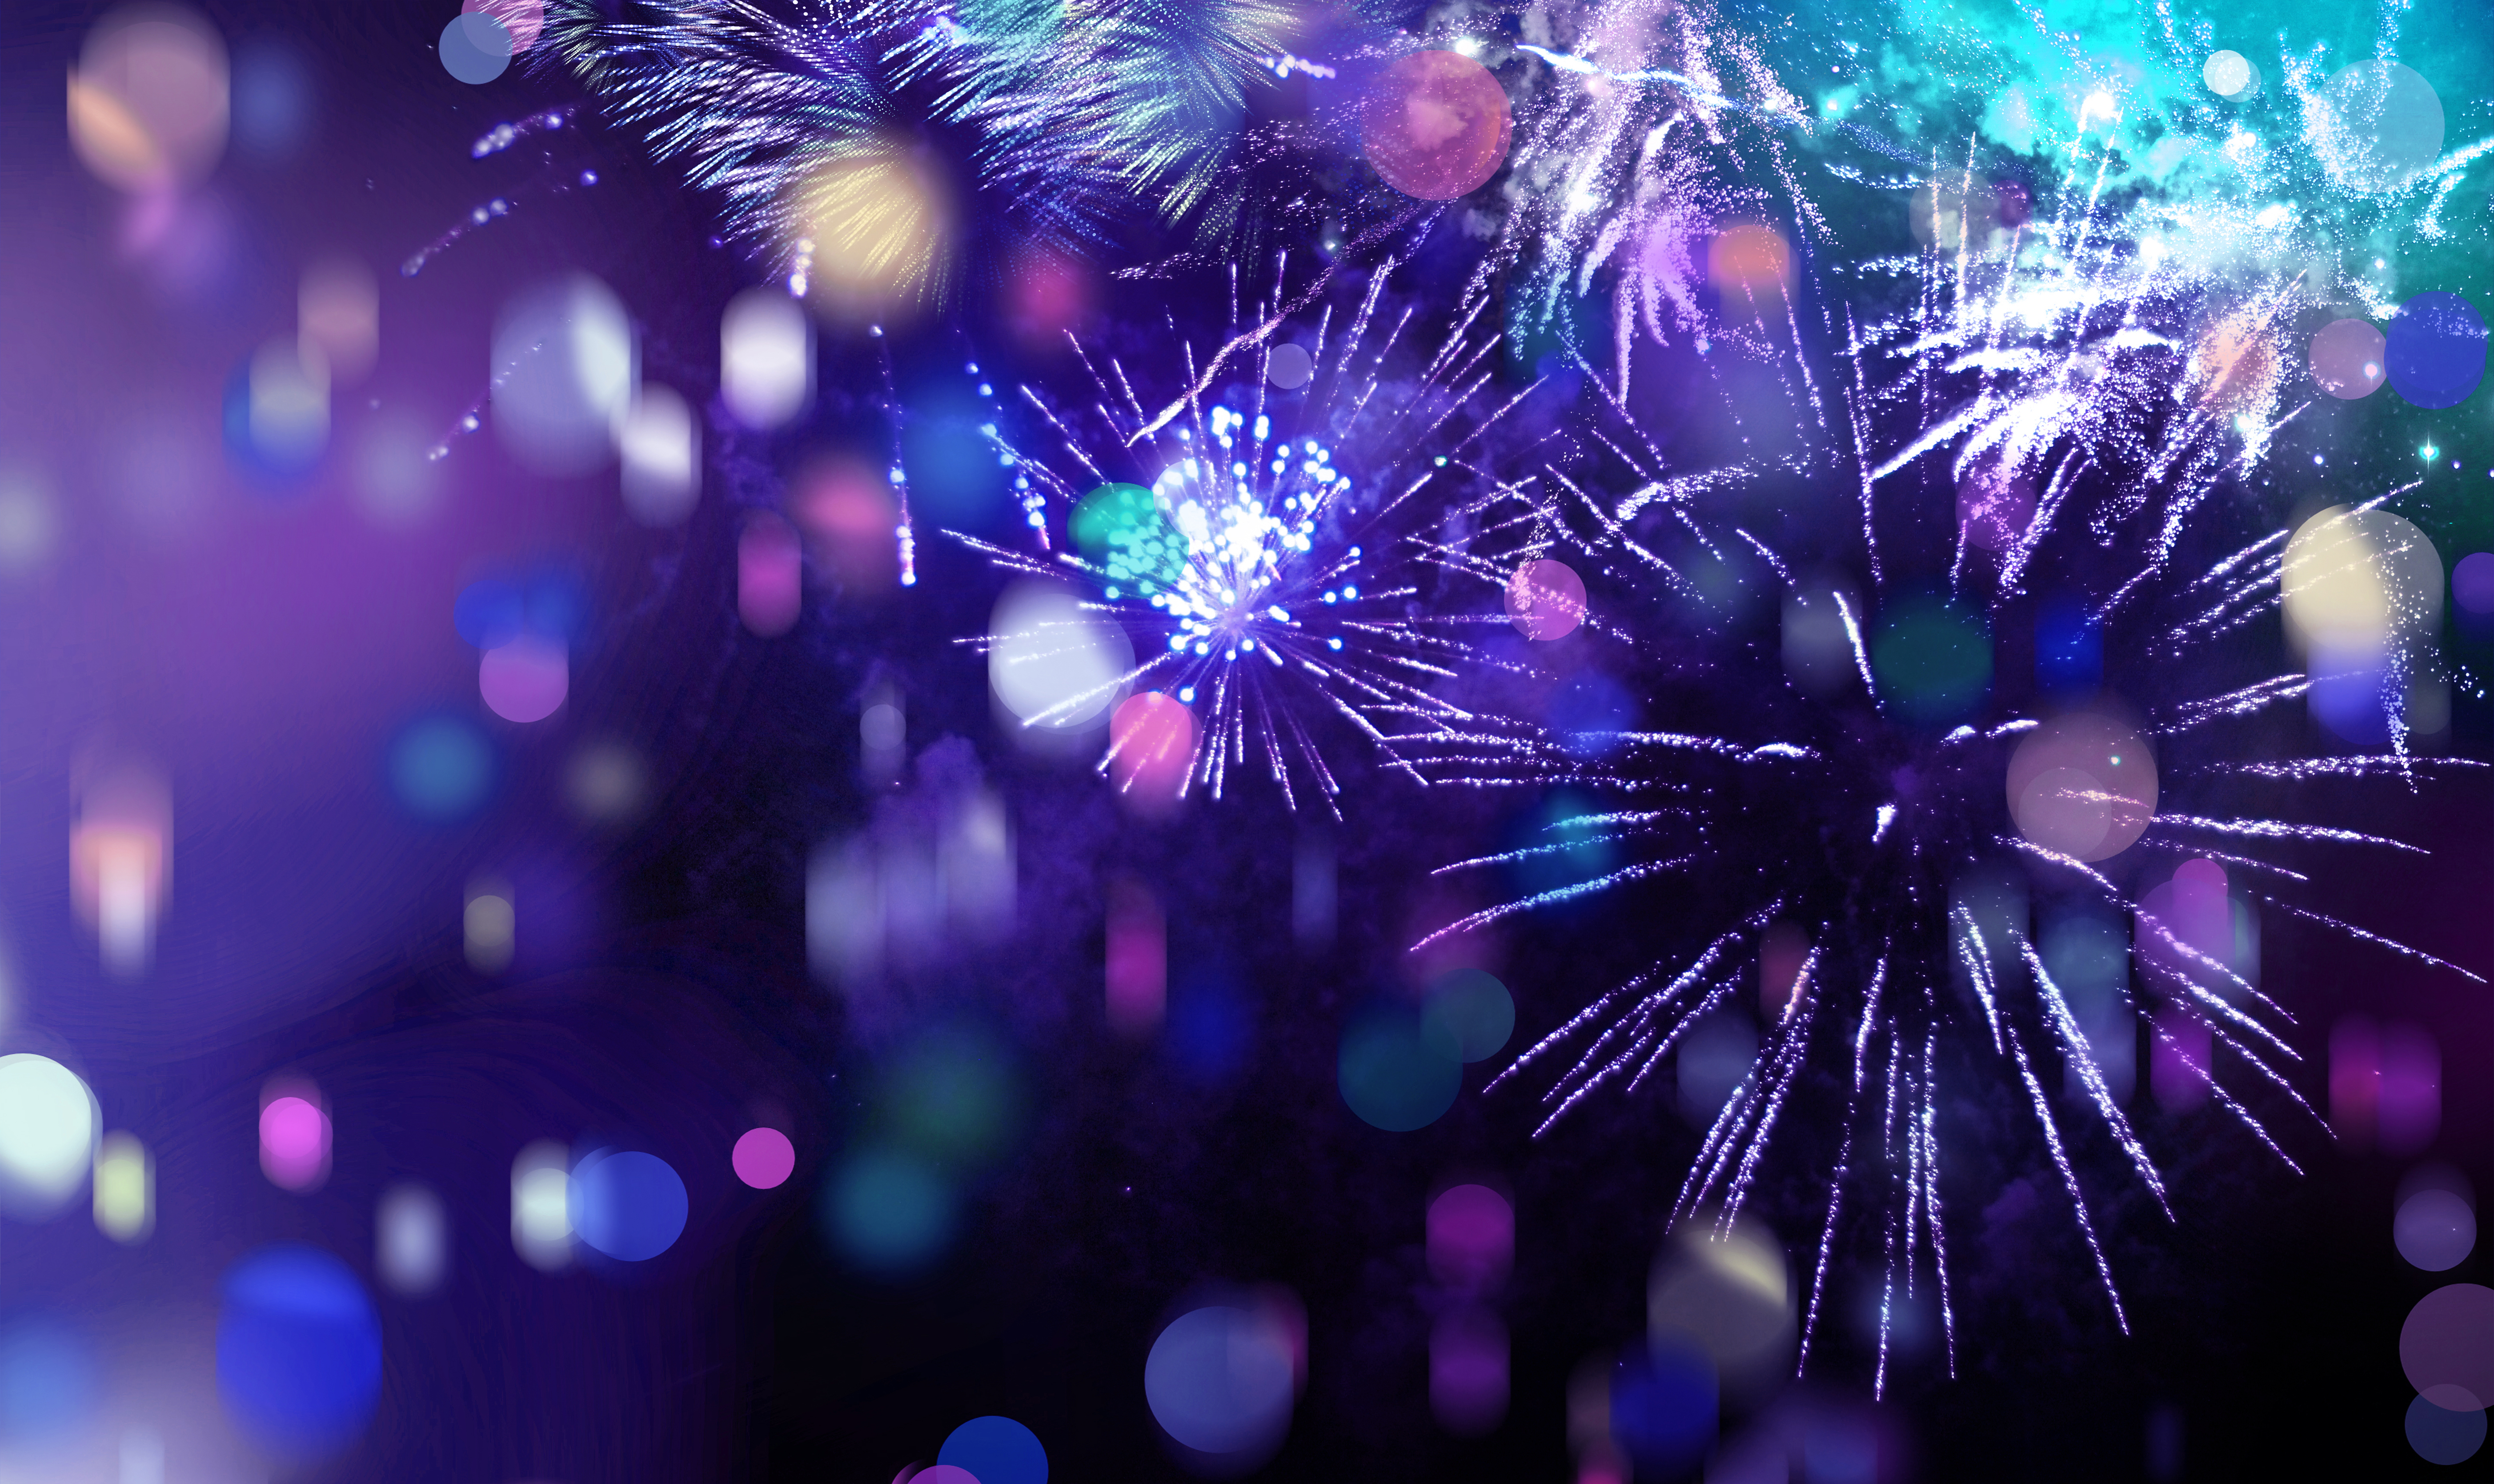 stars and lights pattern of bright sparkling colorful fireworks with colorful stars, confetti and circle shapes added